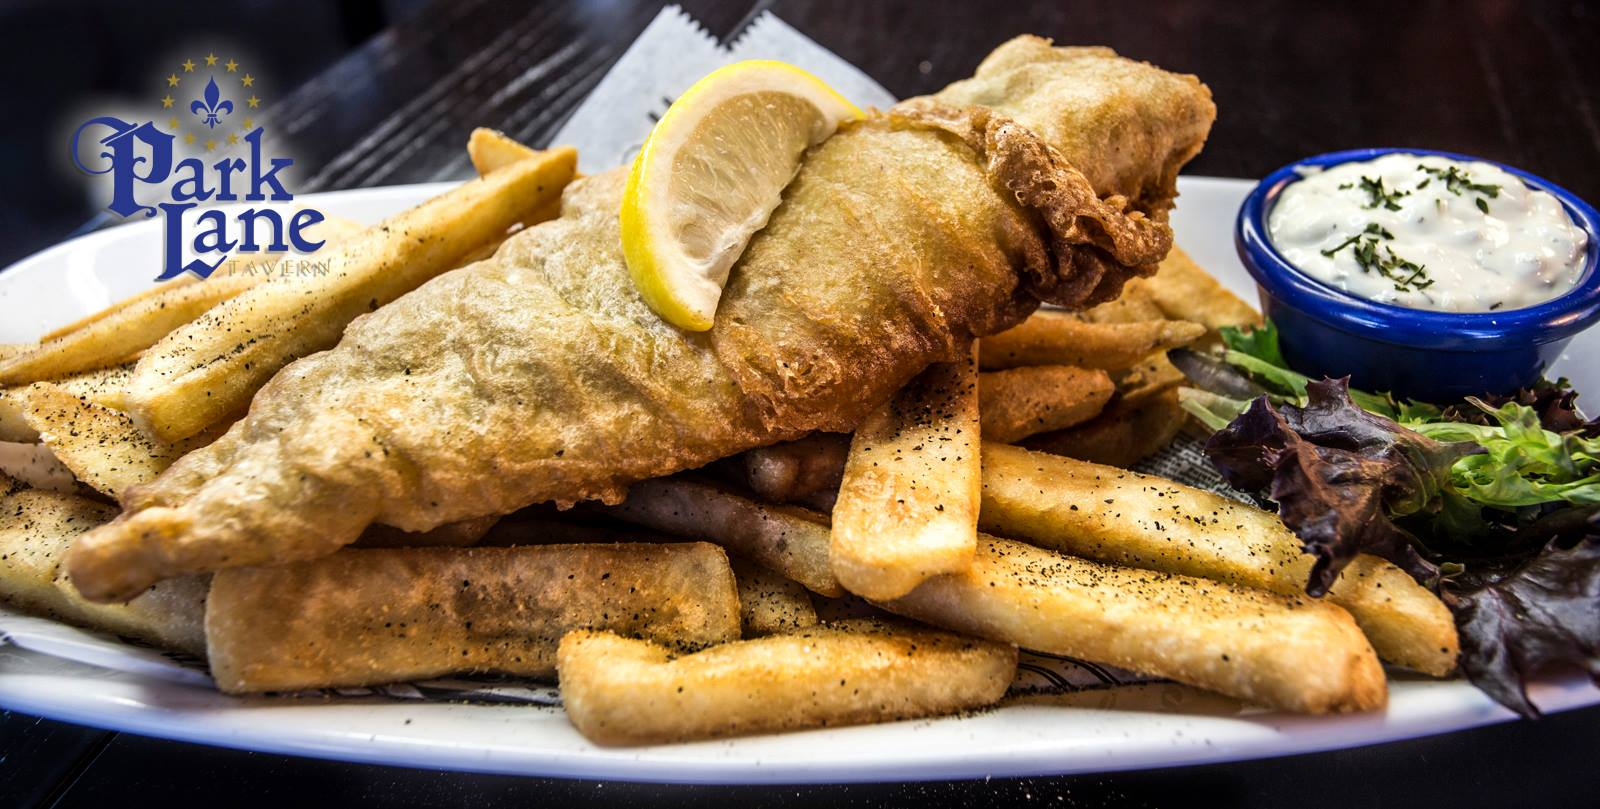 Boddington's Fish & Chips